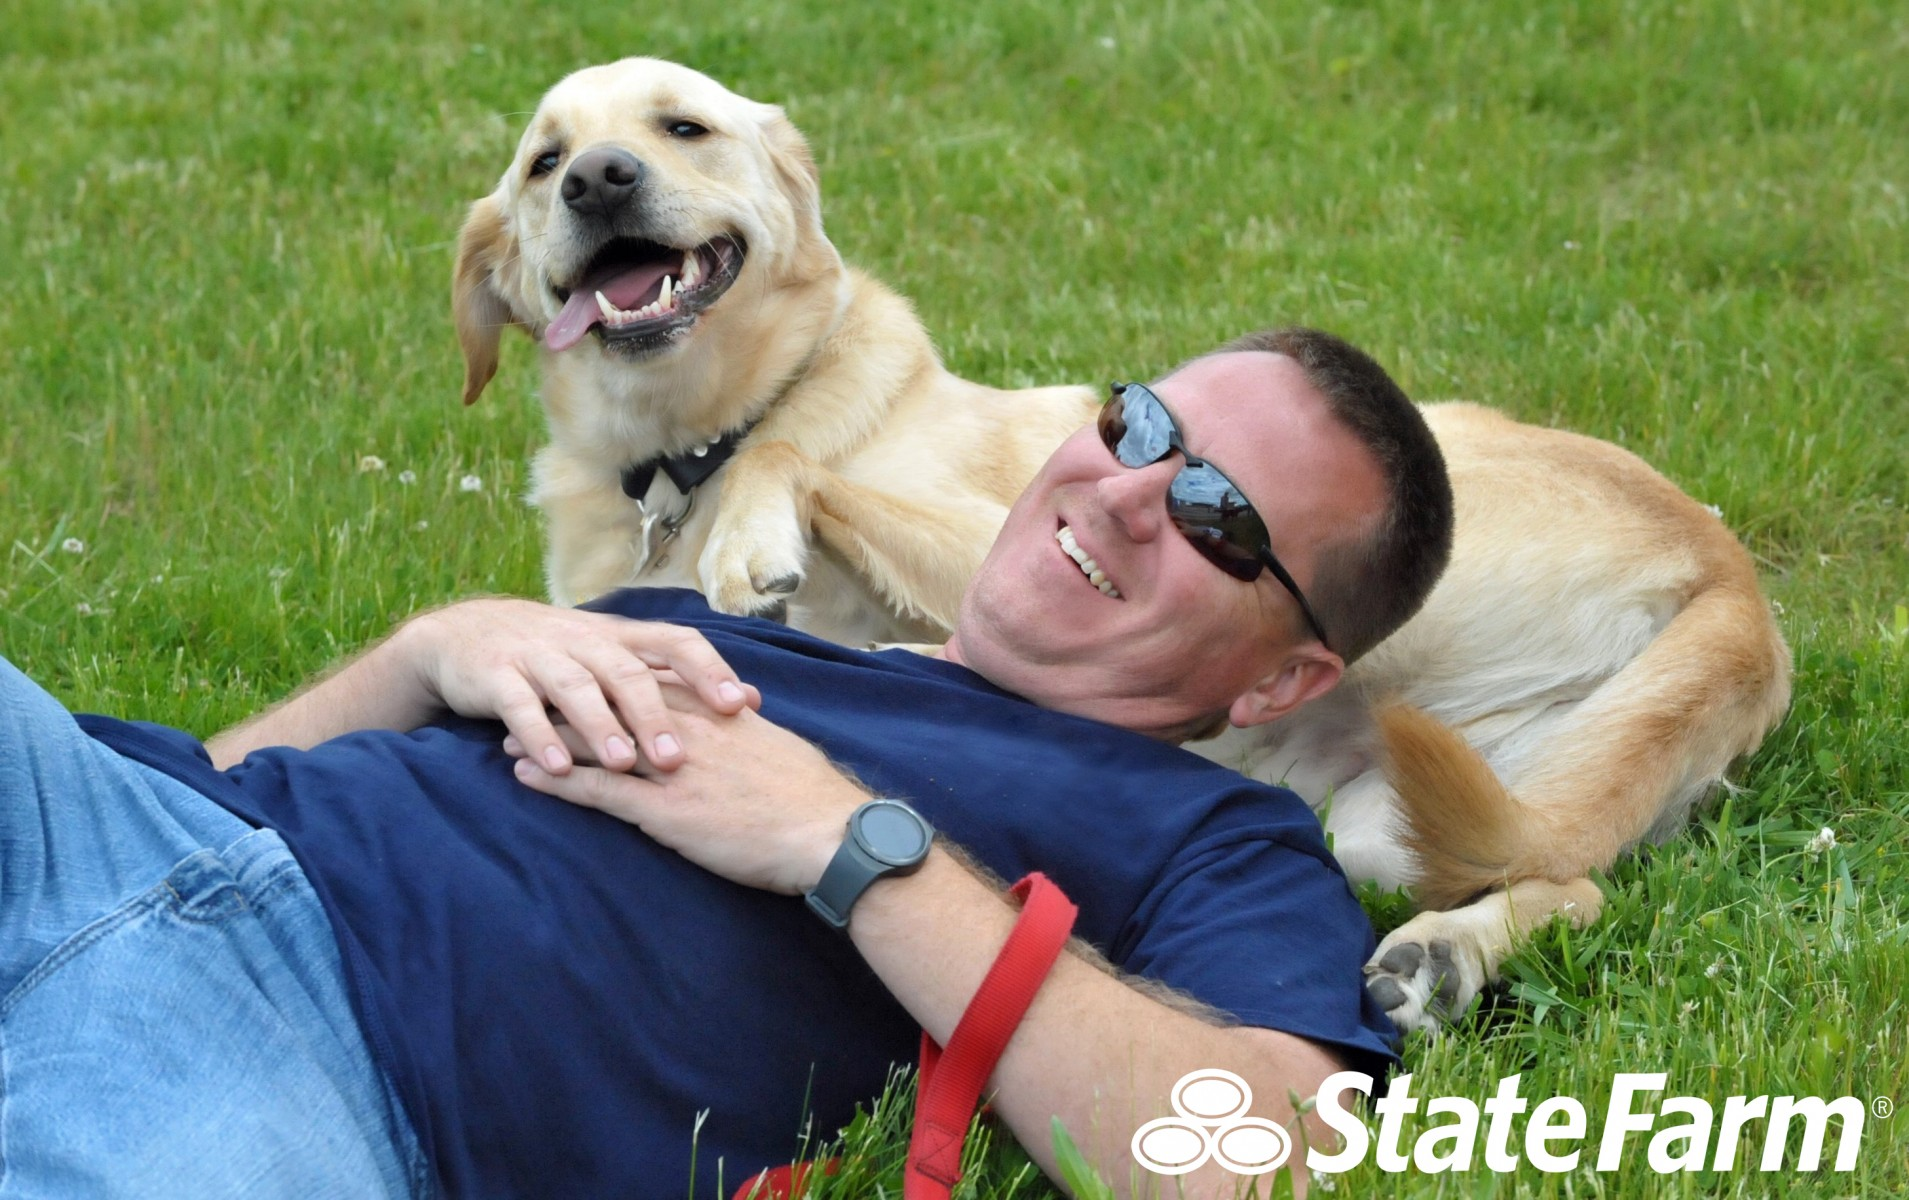 Being a responsible pet owner not only keeps your pet happy, but it also keeps people safer.